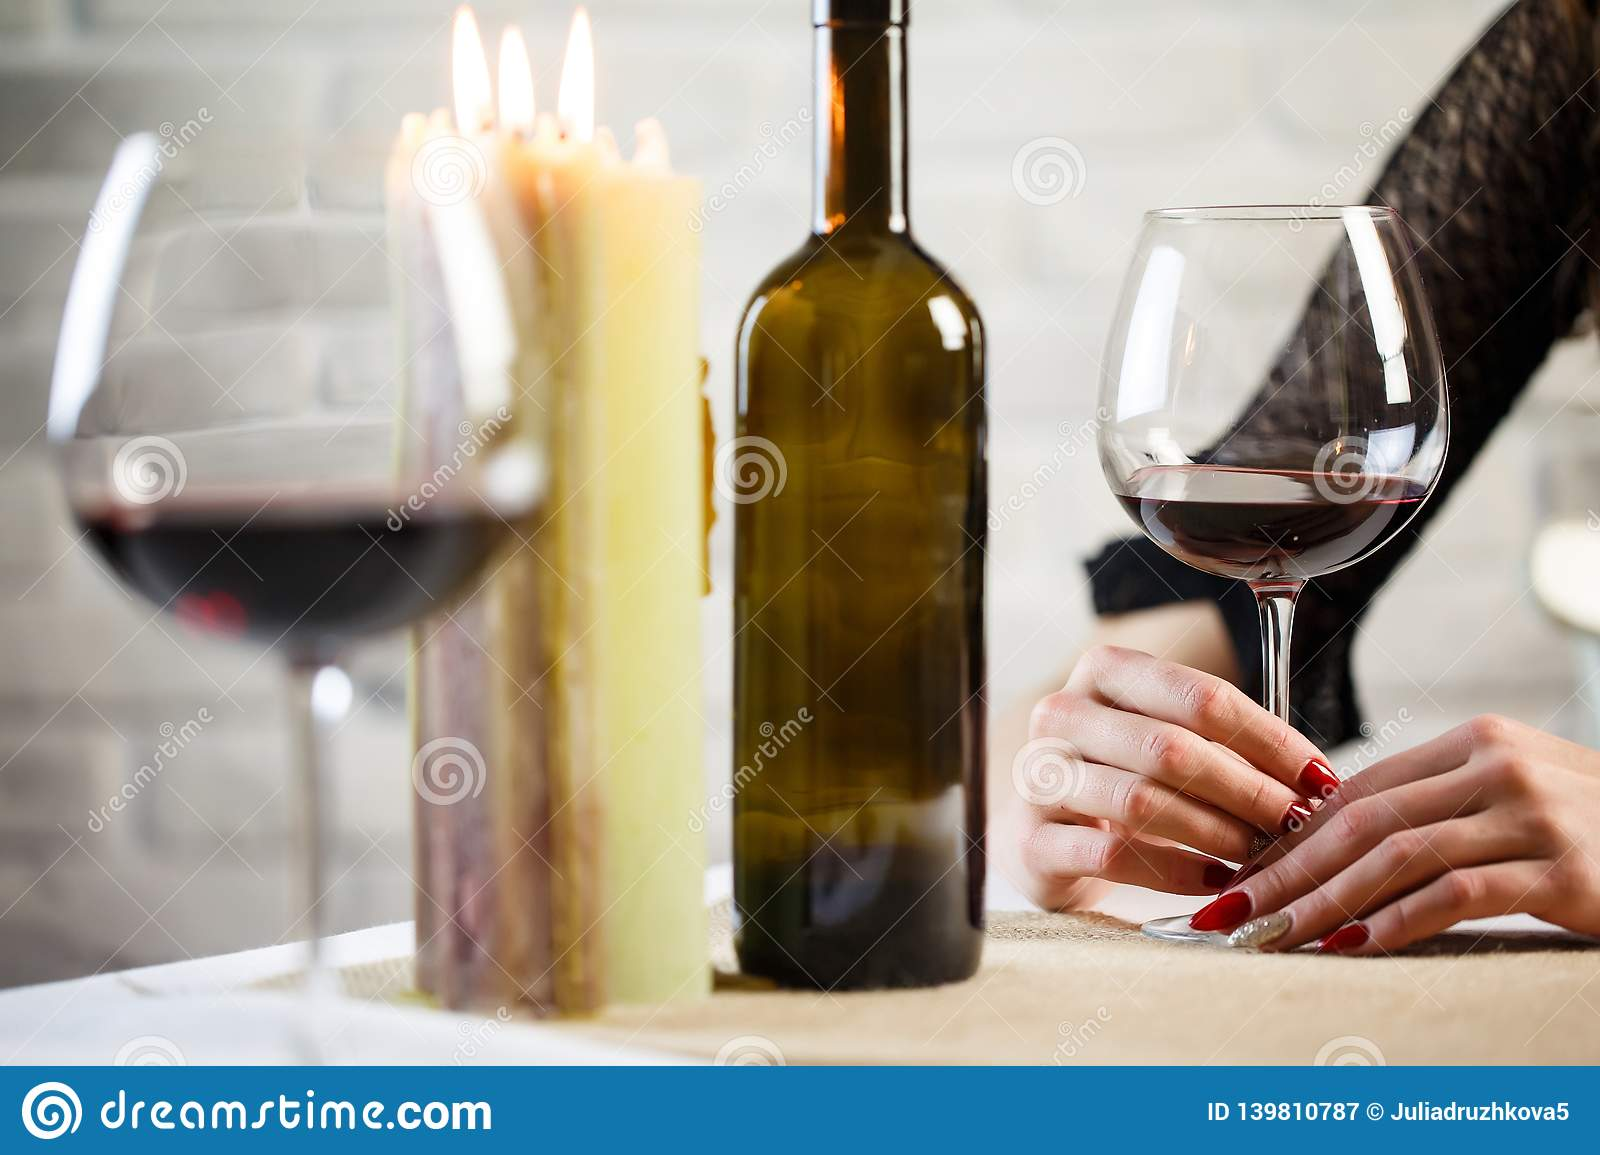 A young woman holds in her hand a glass of wine on a blind date. Two wineglass on the table. Close up